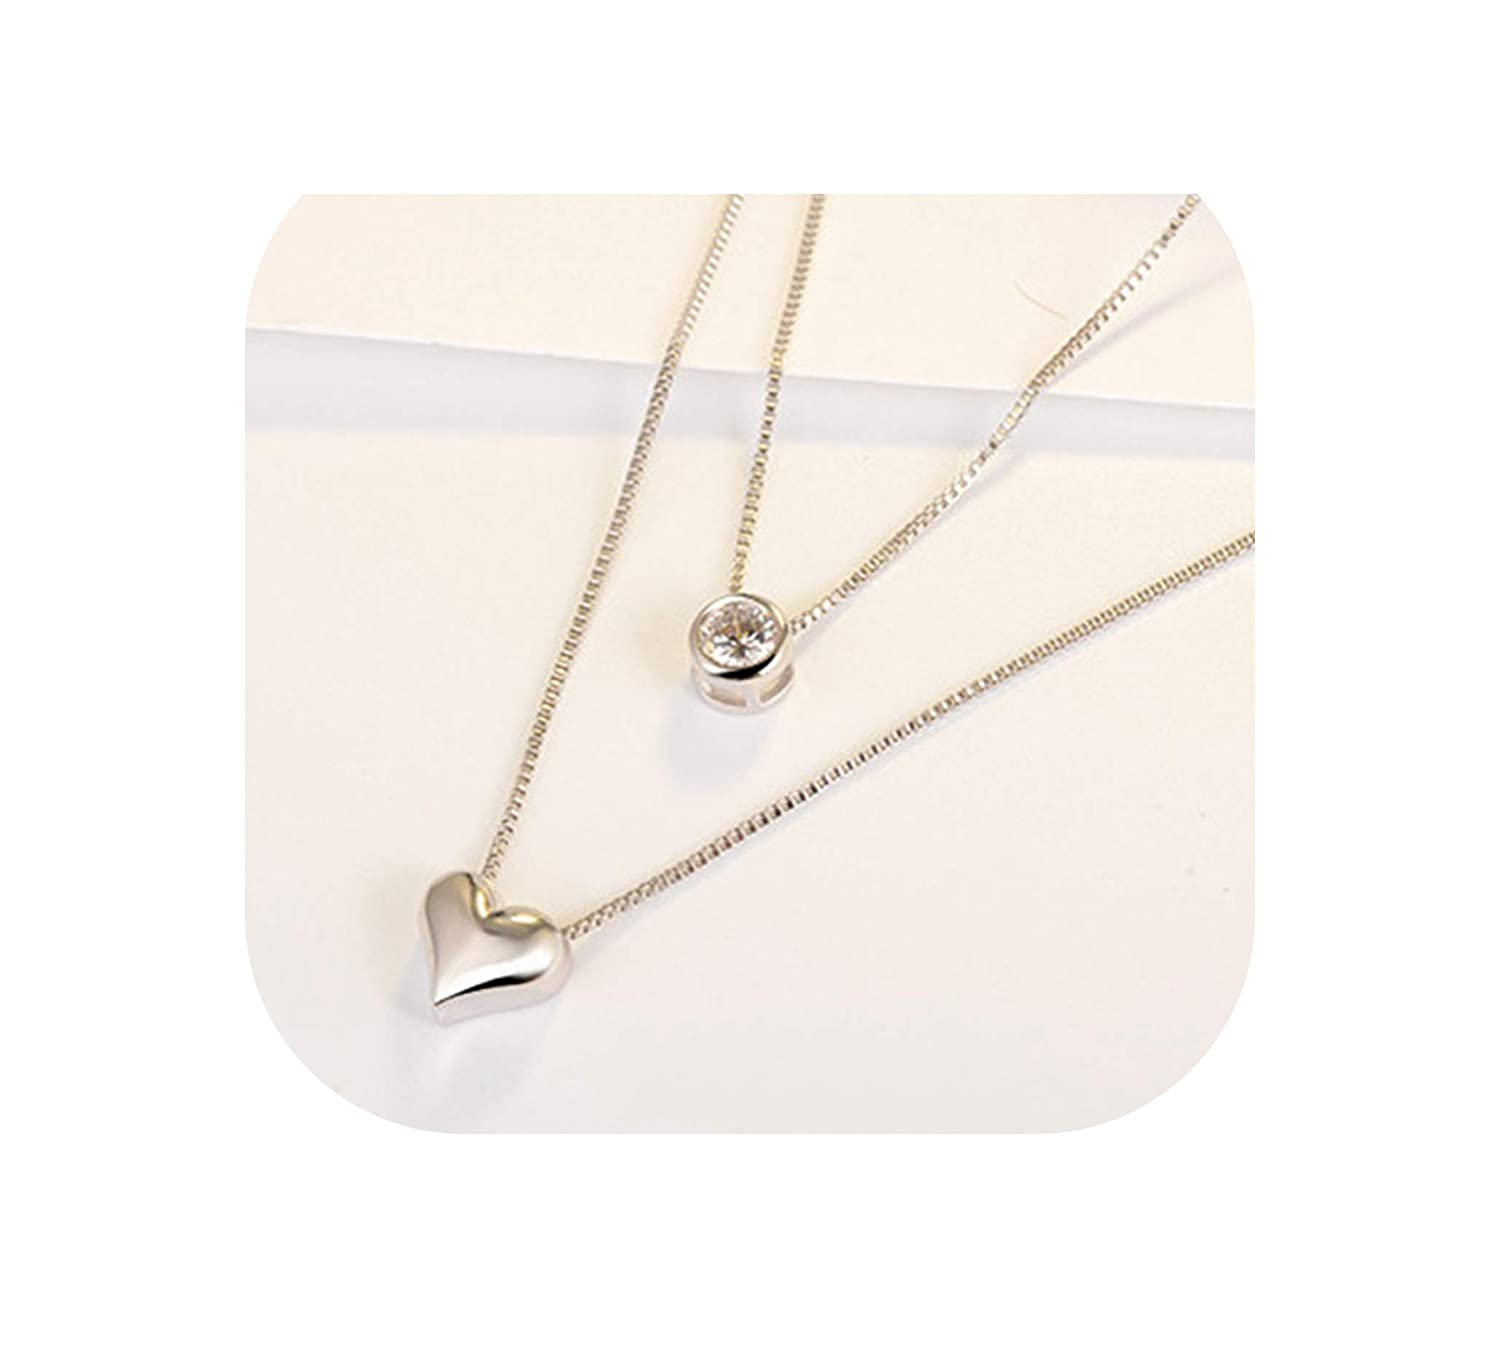 Chibi-Store 925 Sterling Silver Heart-Shaped Double-Layer Necklace Temperament Trend Wild Jewelry GN981